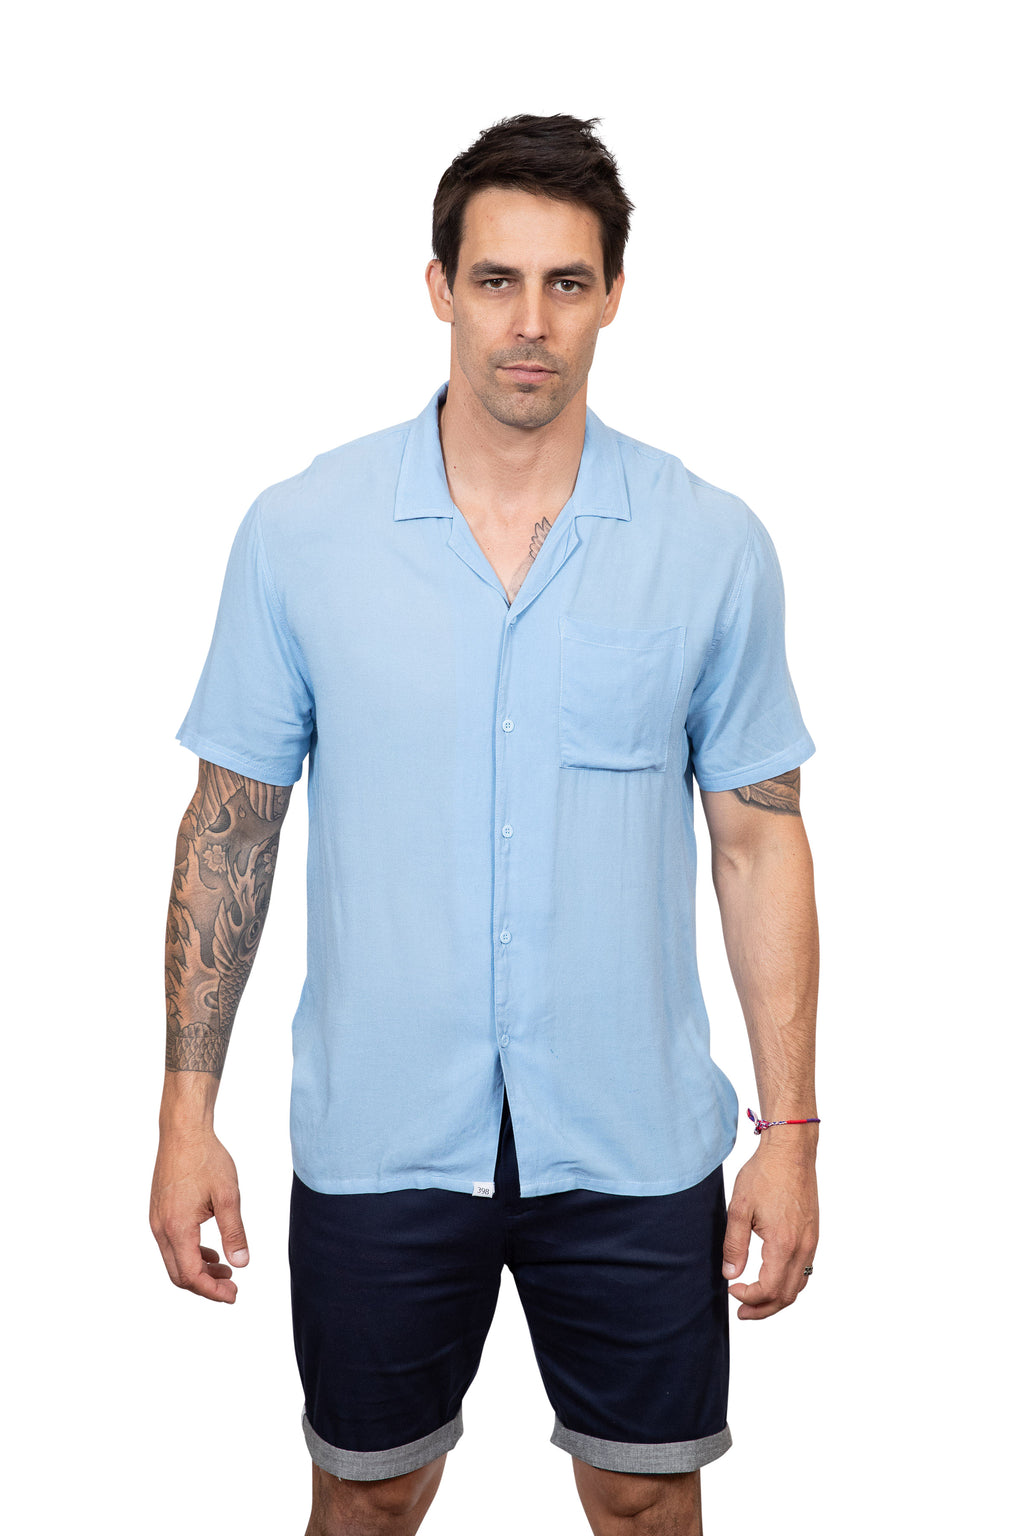 KINN 398 Collection Short sleeved Sky Blue relaxed fit pocket shirt